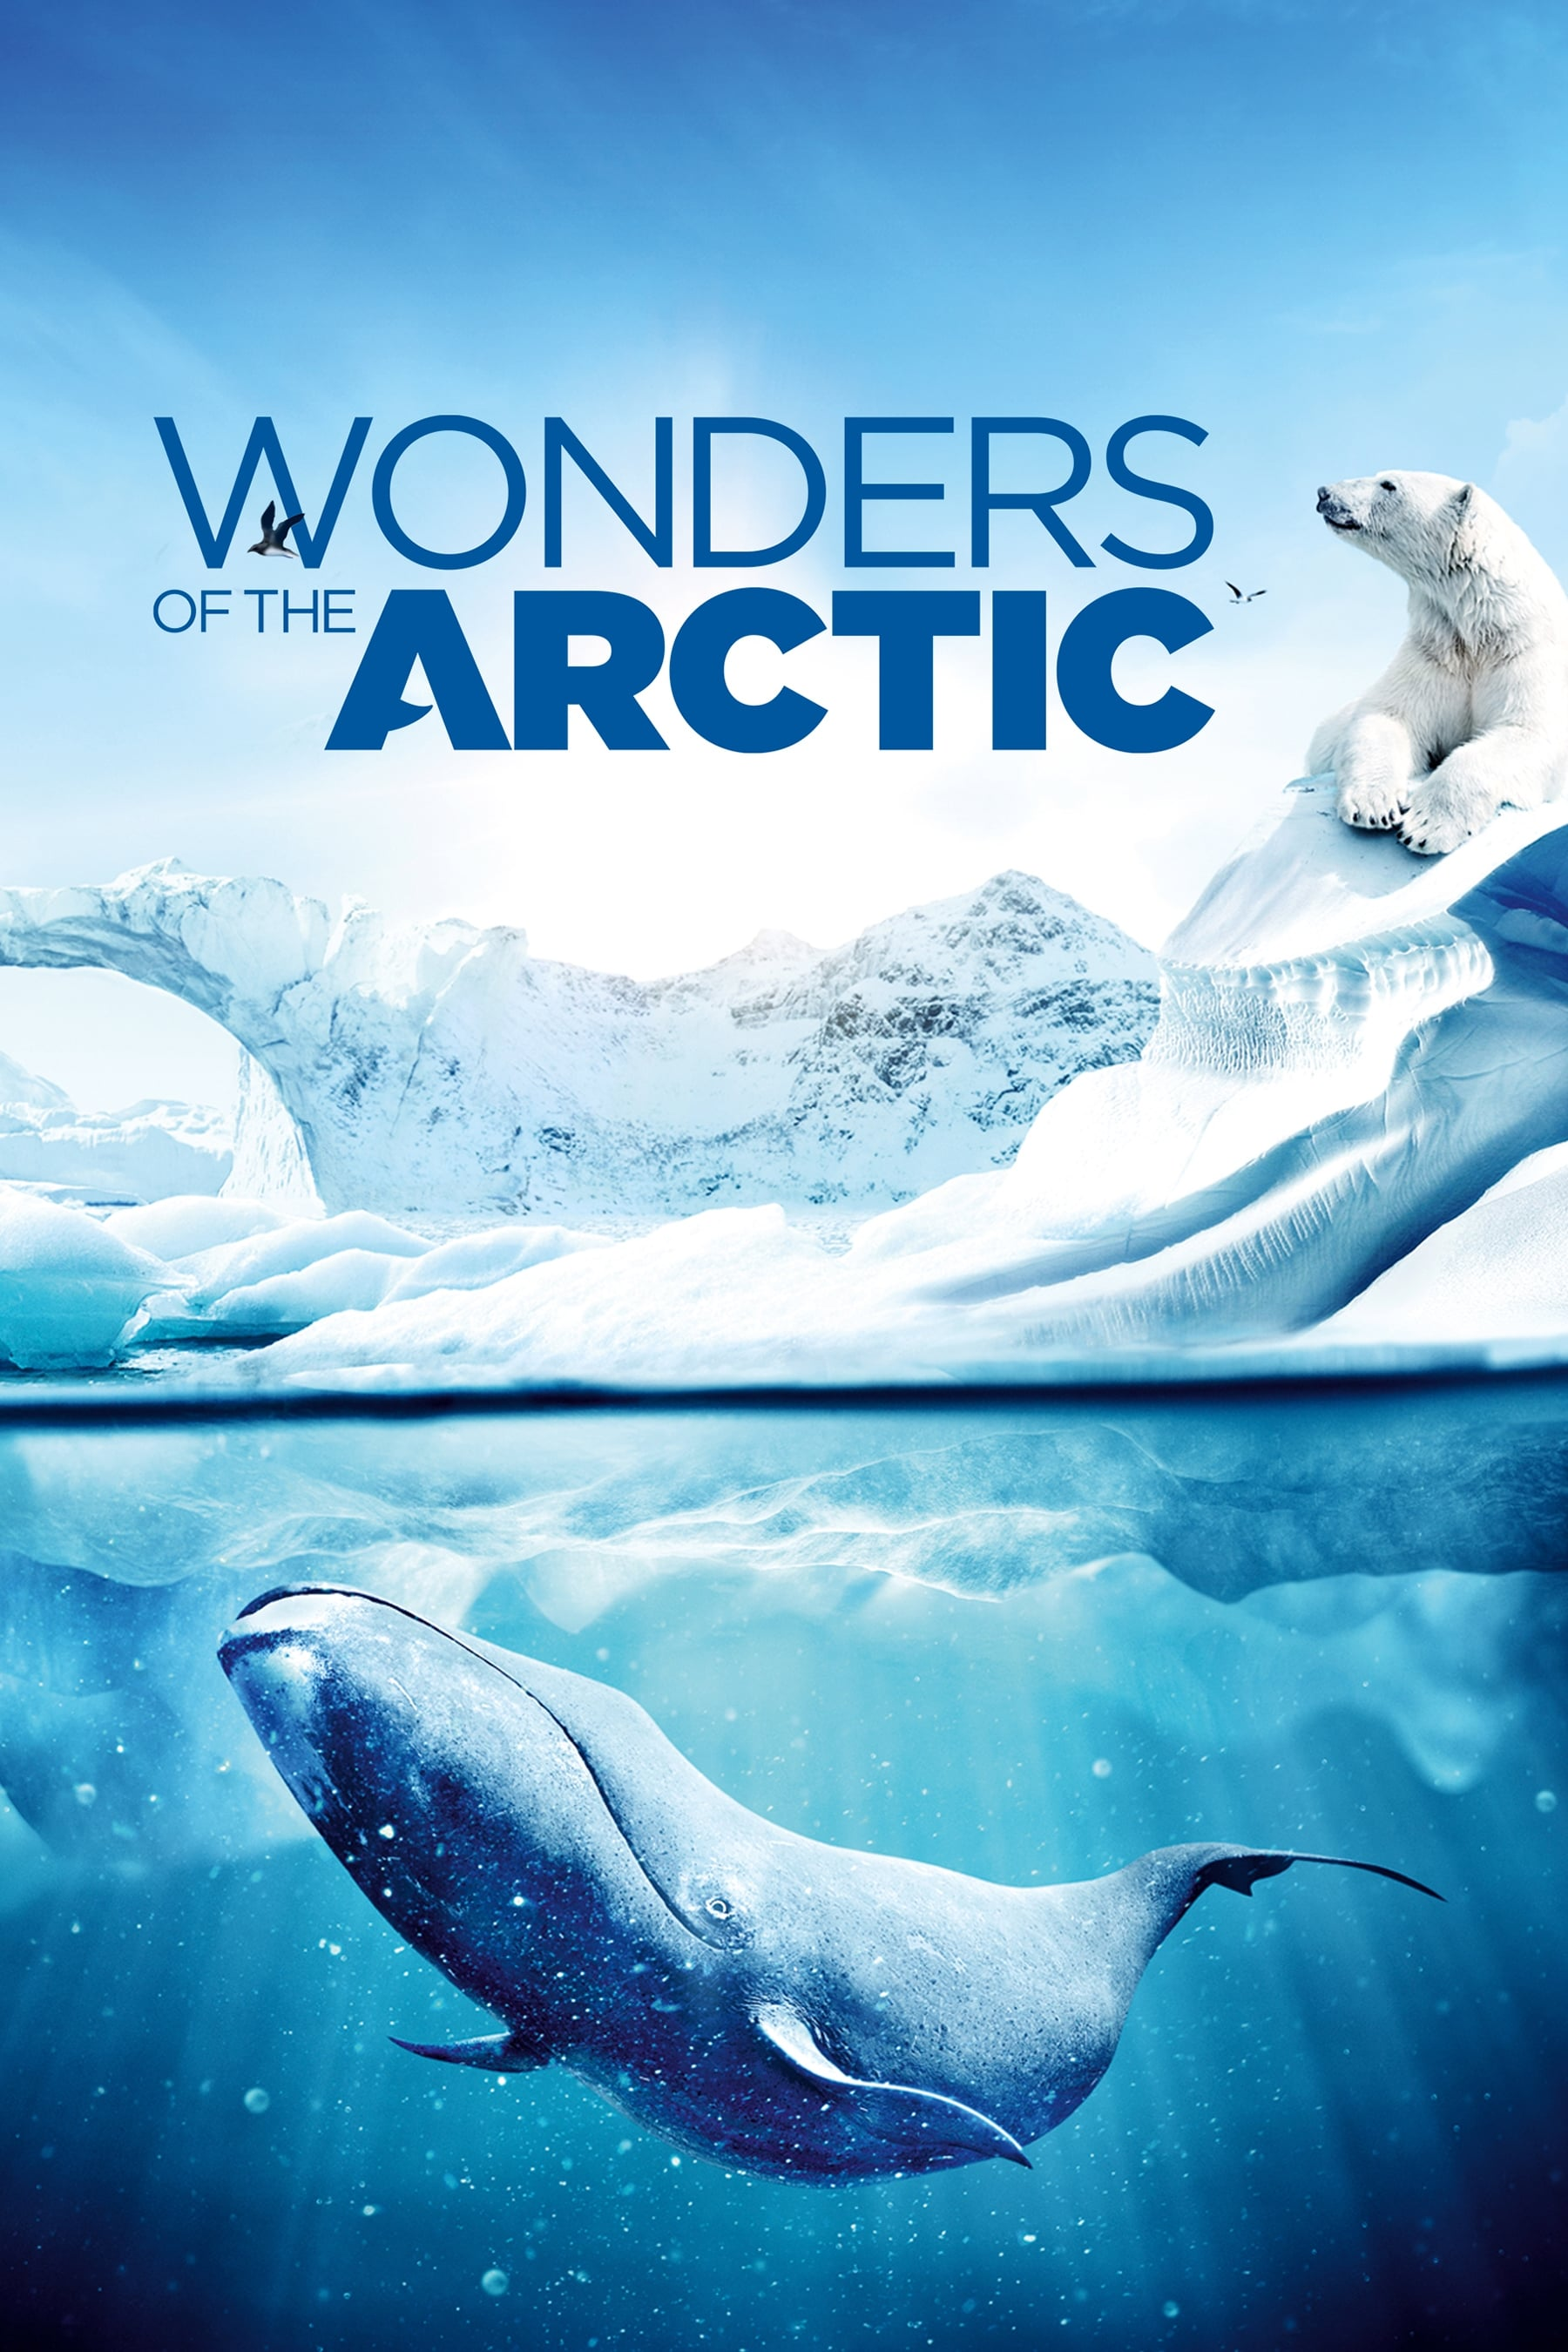 Wonders of the Arctic (2014)